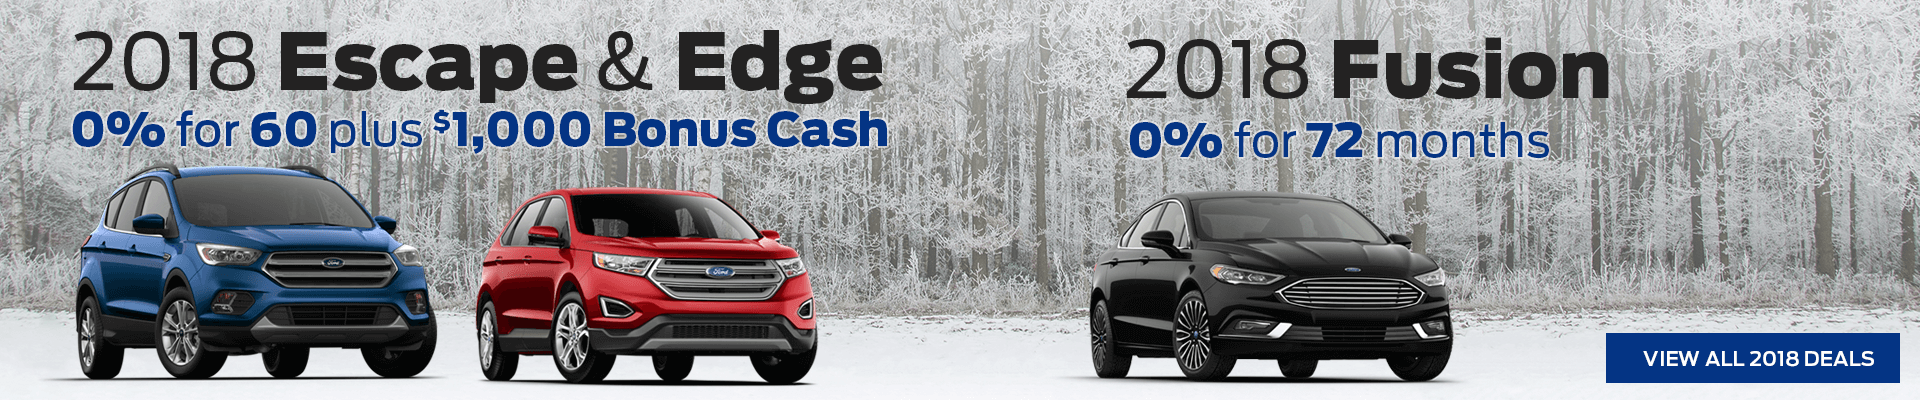 Ford Escape, Edge & Fusion incentives on 2018 models